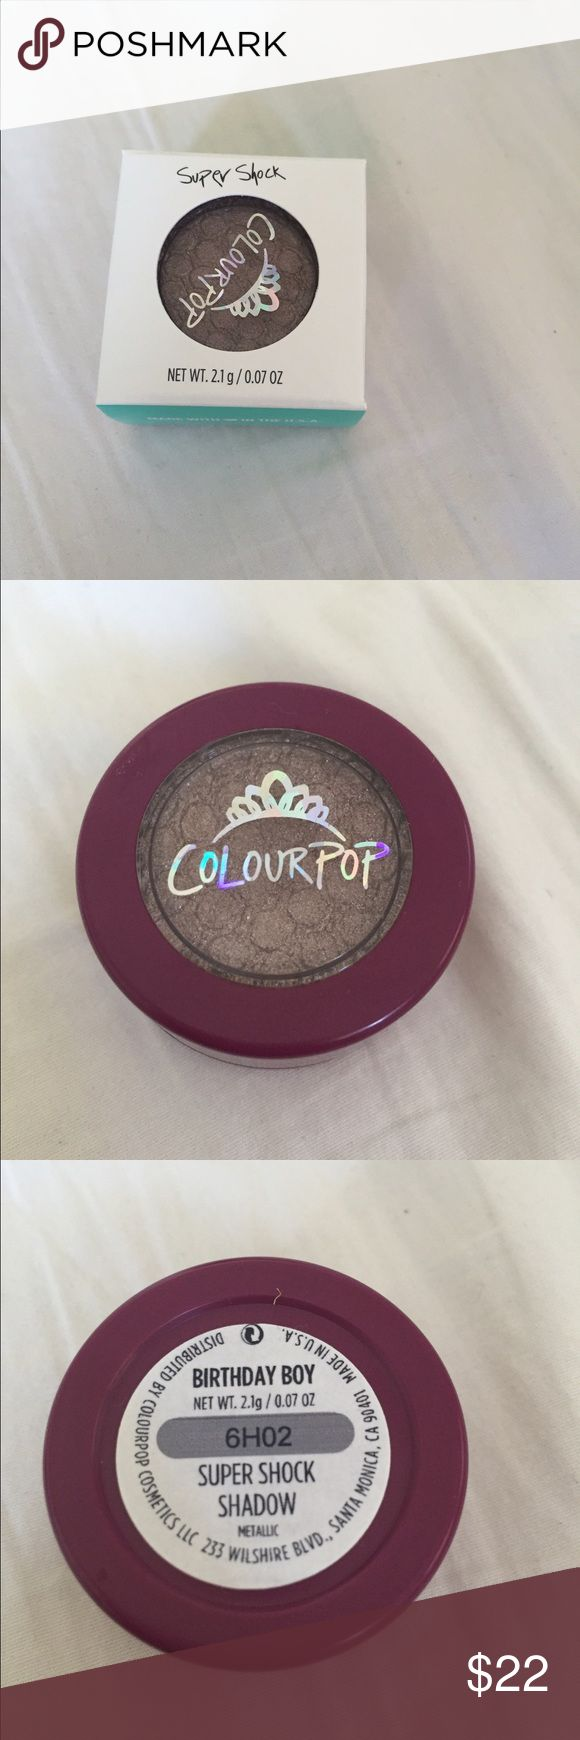 Colourpop Birthday Boy! Brand new. Never opened or swatched. Box only opened for pictures. Colourpop Makeup Eyeshadow